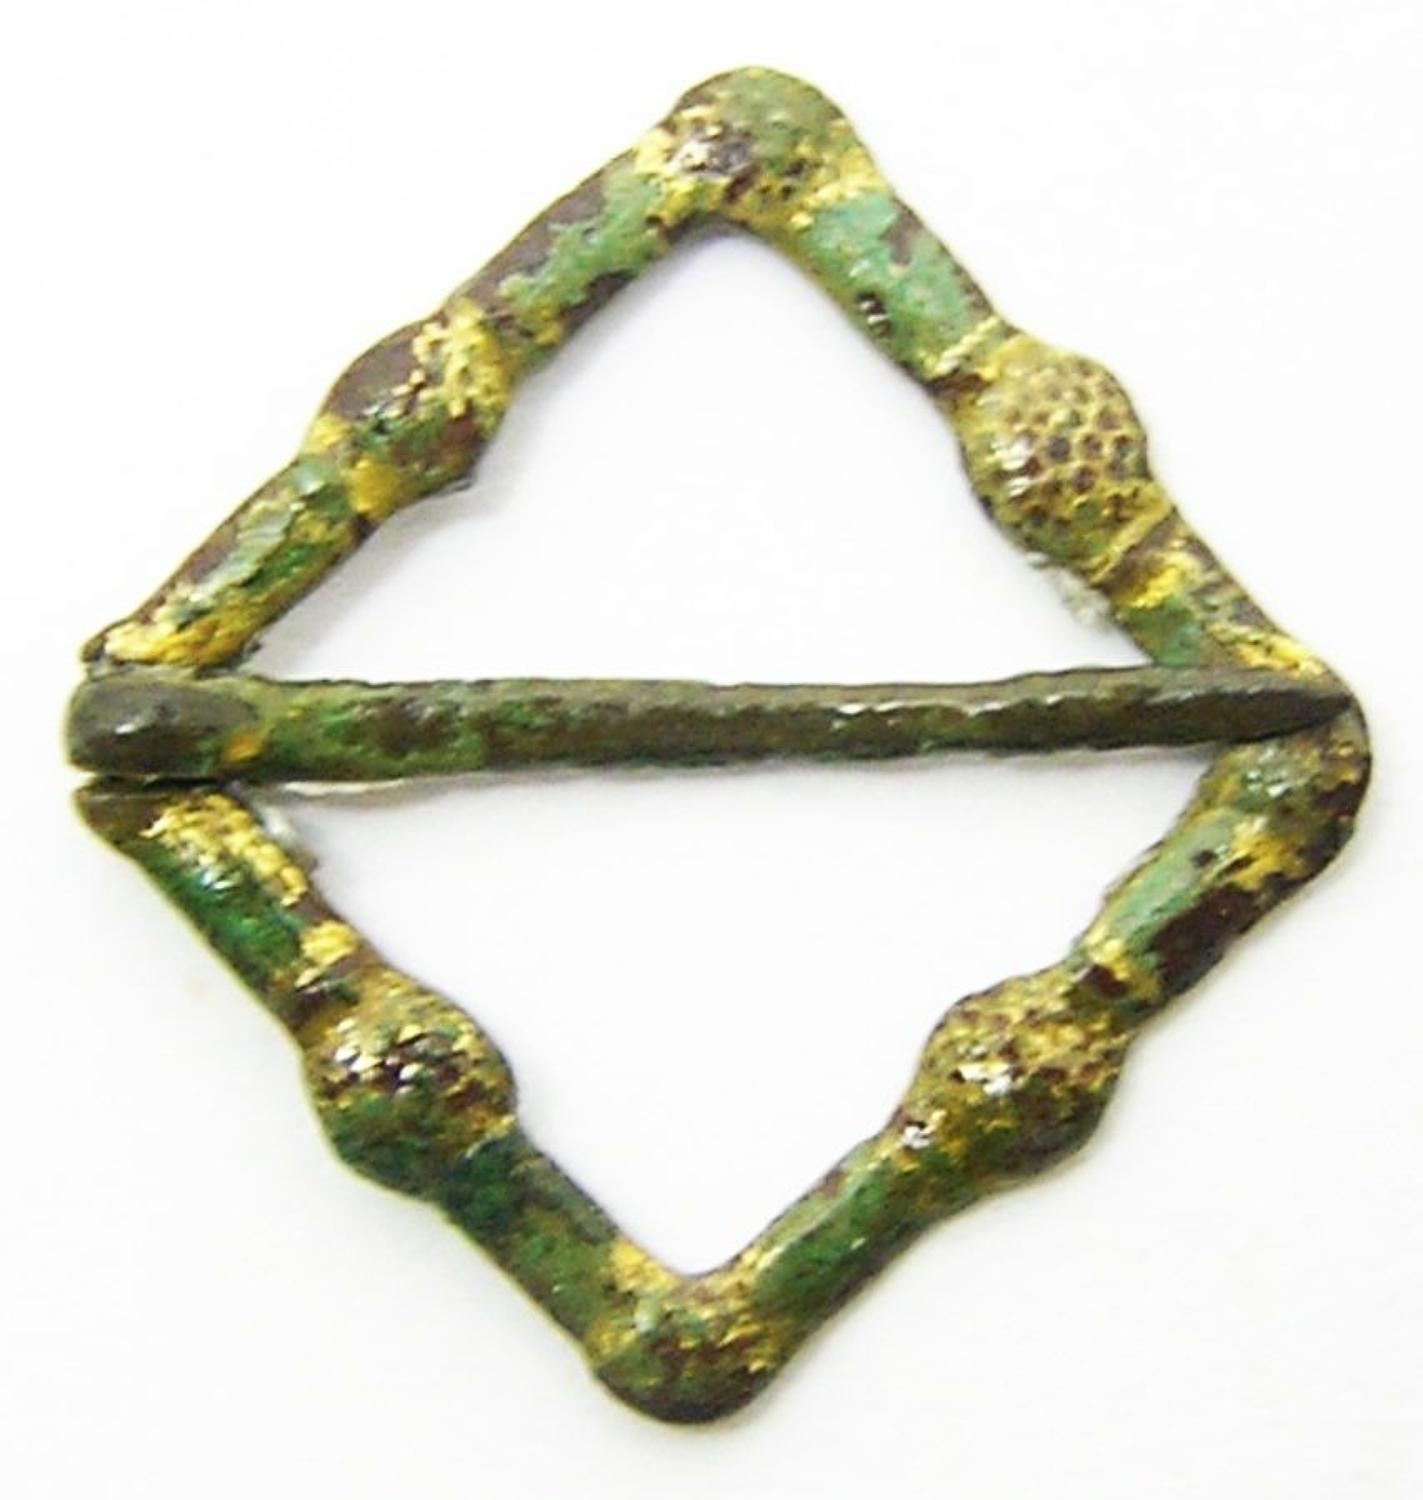 Medieval Gilt Lozenge Shaped Annular Brooch